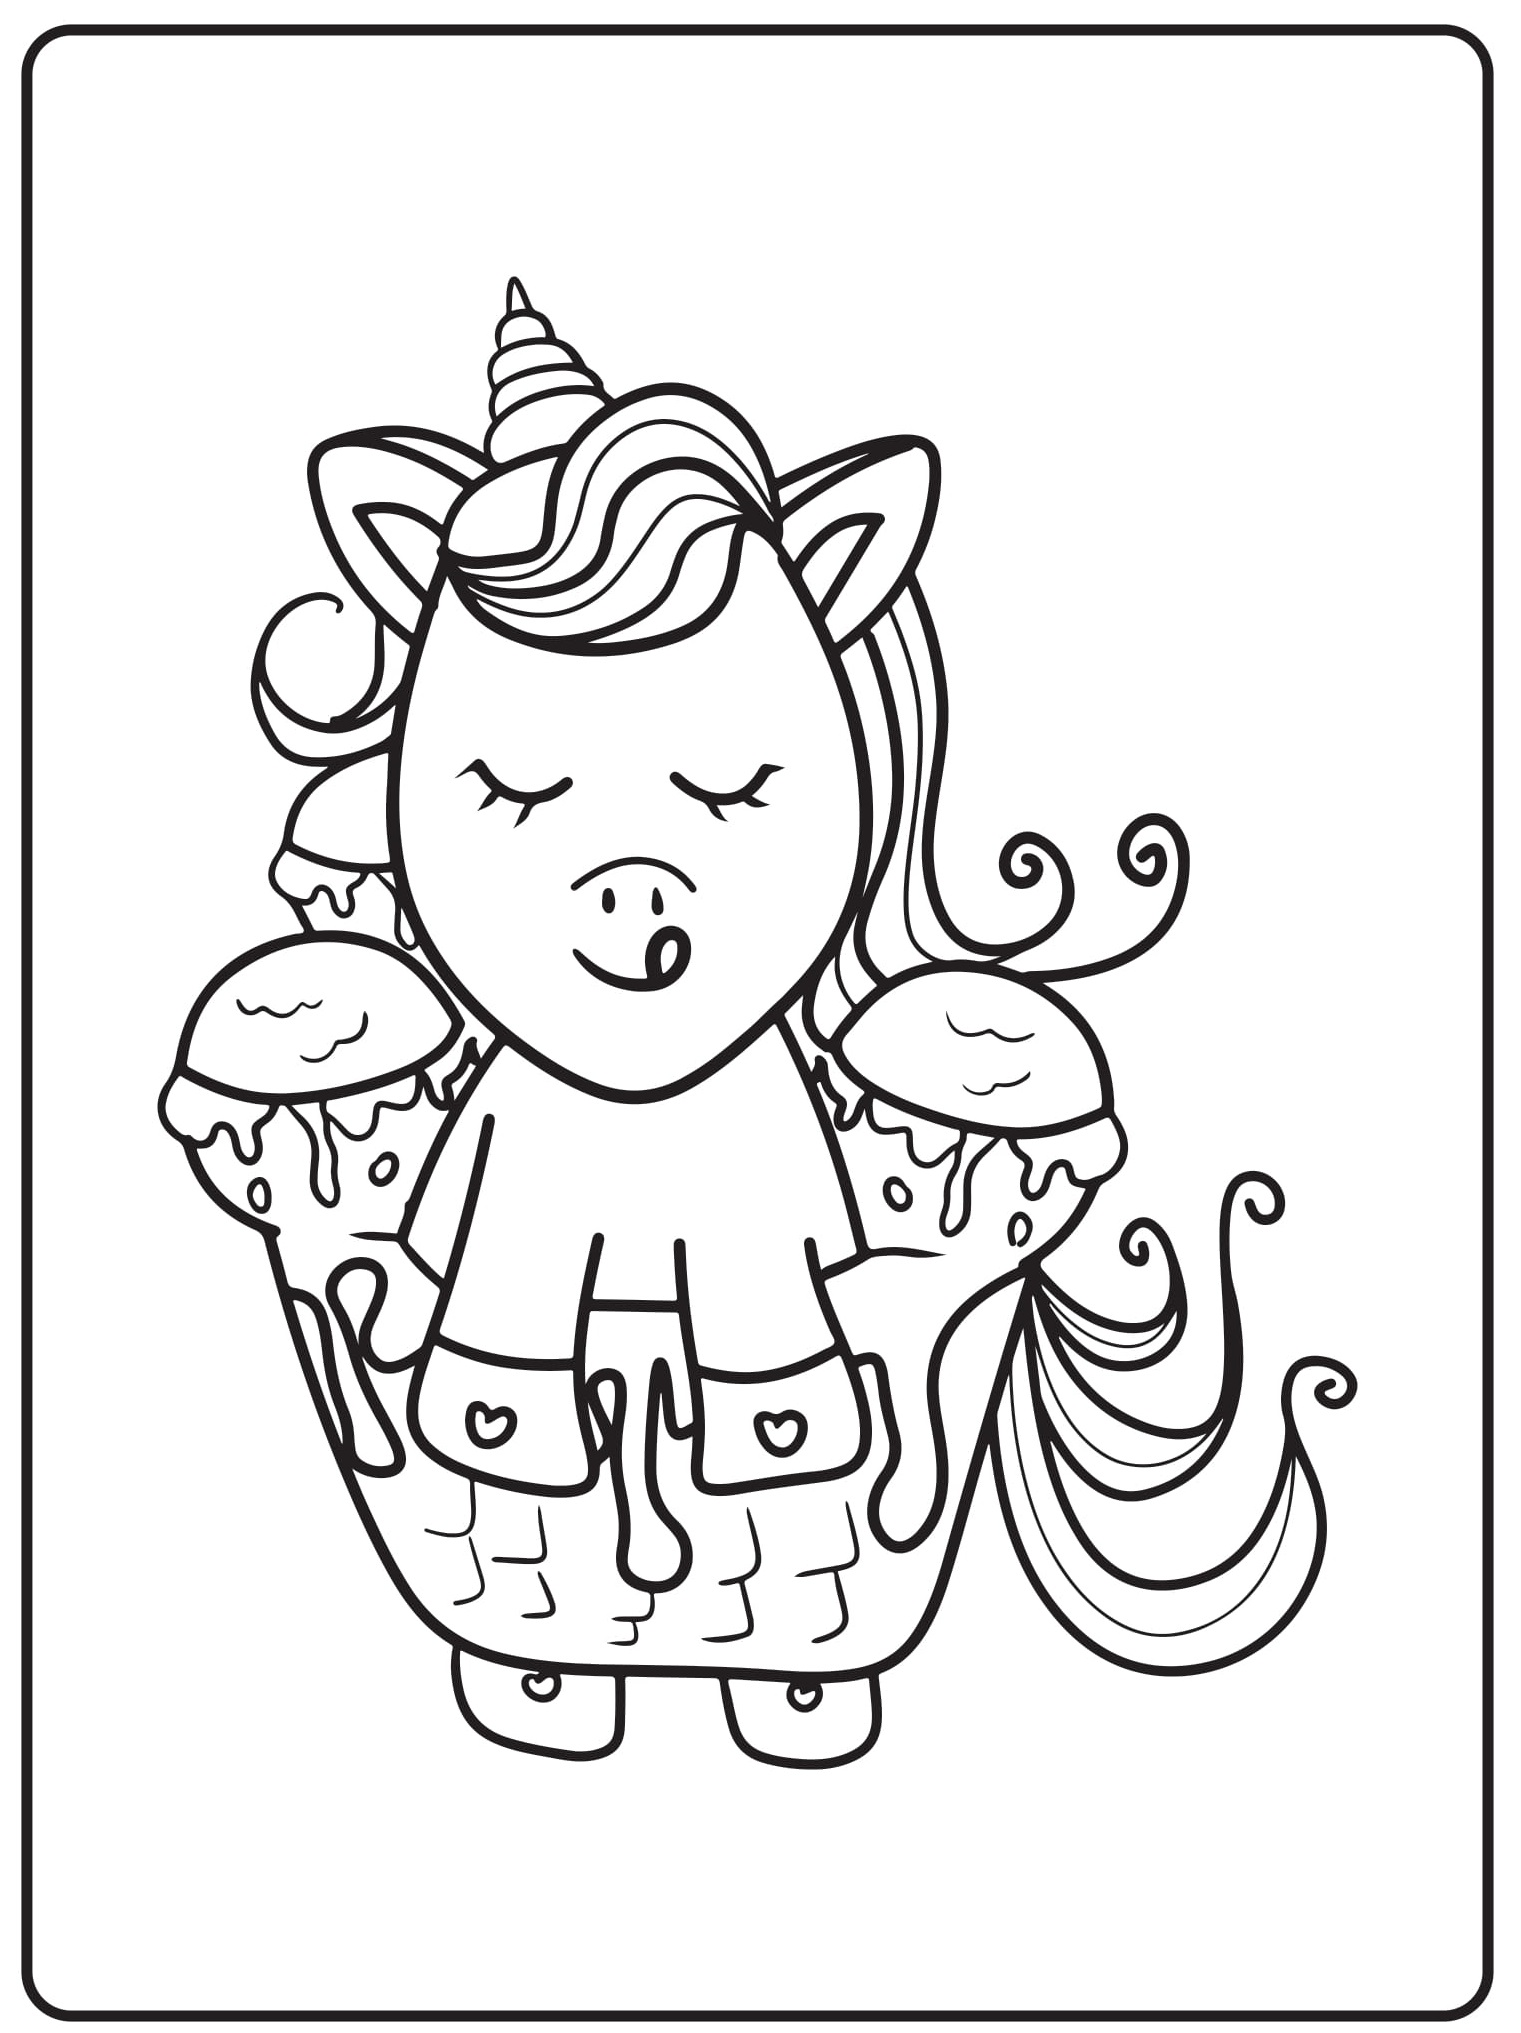 Unicorn Coloring Pages 43